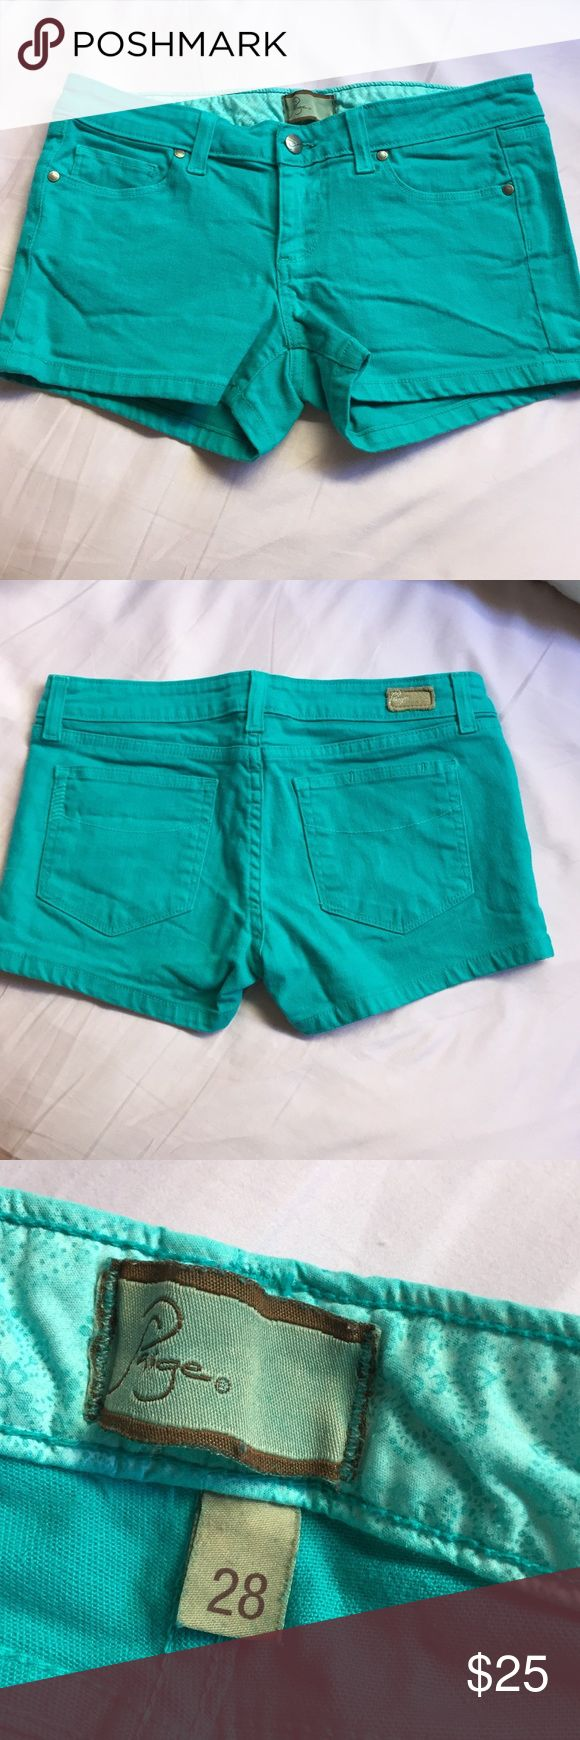 Paige aqua shorts. Very cute shorts. Pause brand. Size 28. Can fit 27 also. Shows light wear. Paige Jeans Shorts